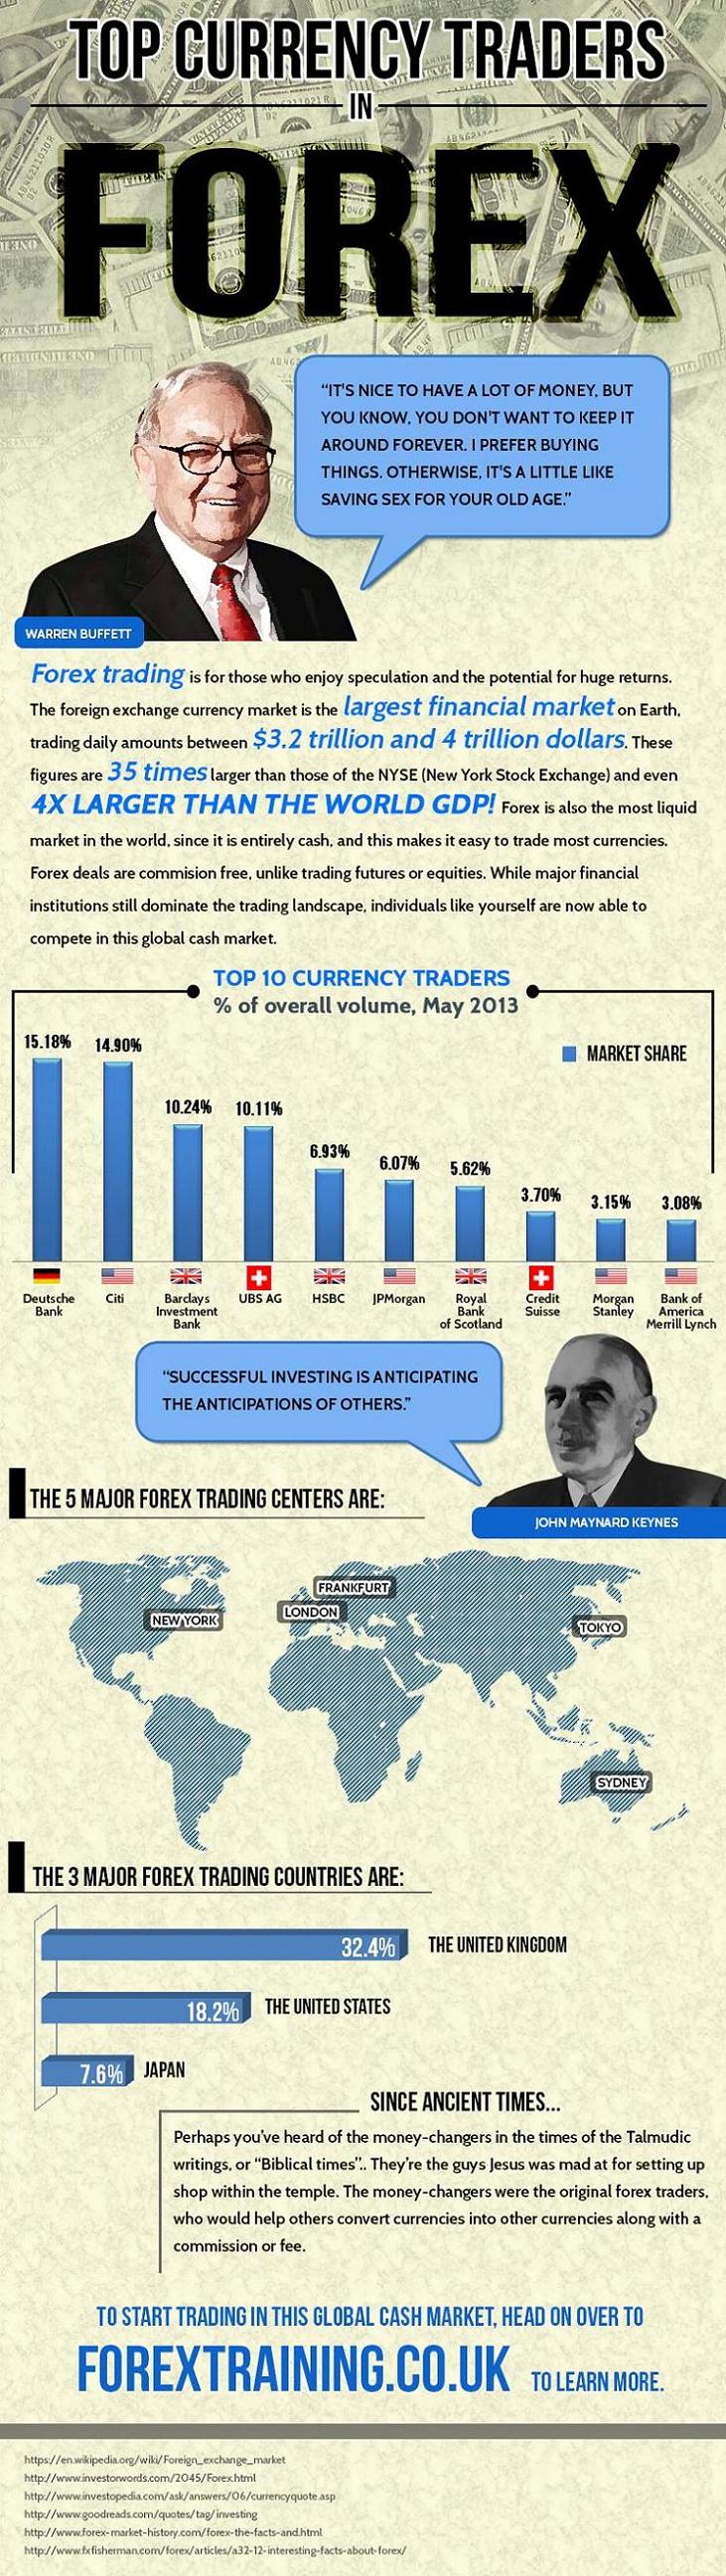 Top 10 richest forex traders in the world